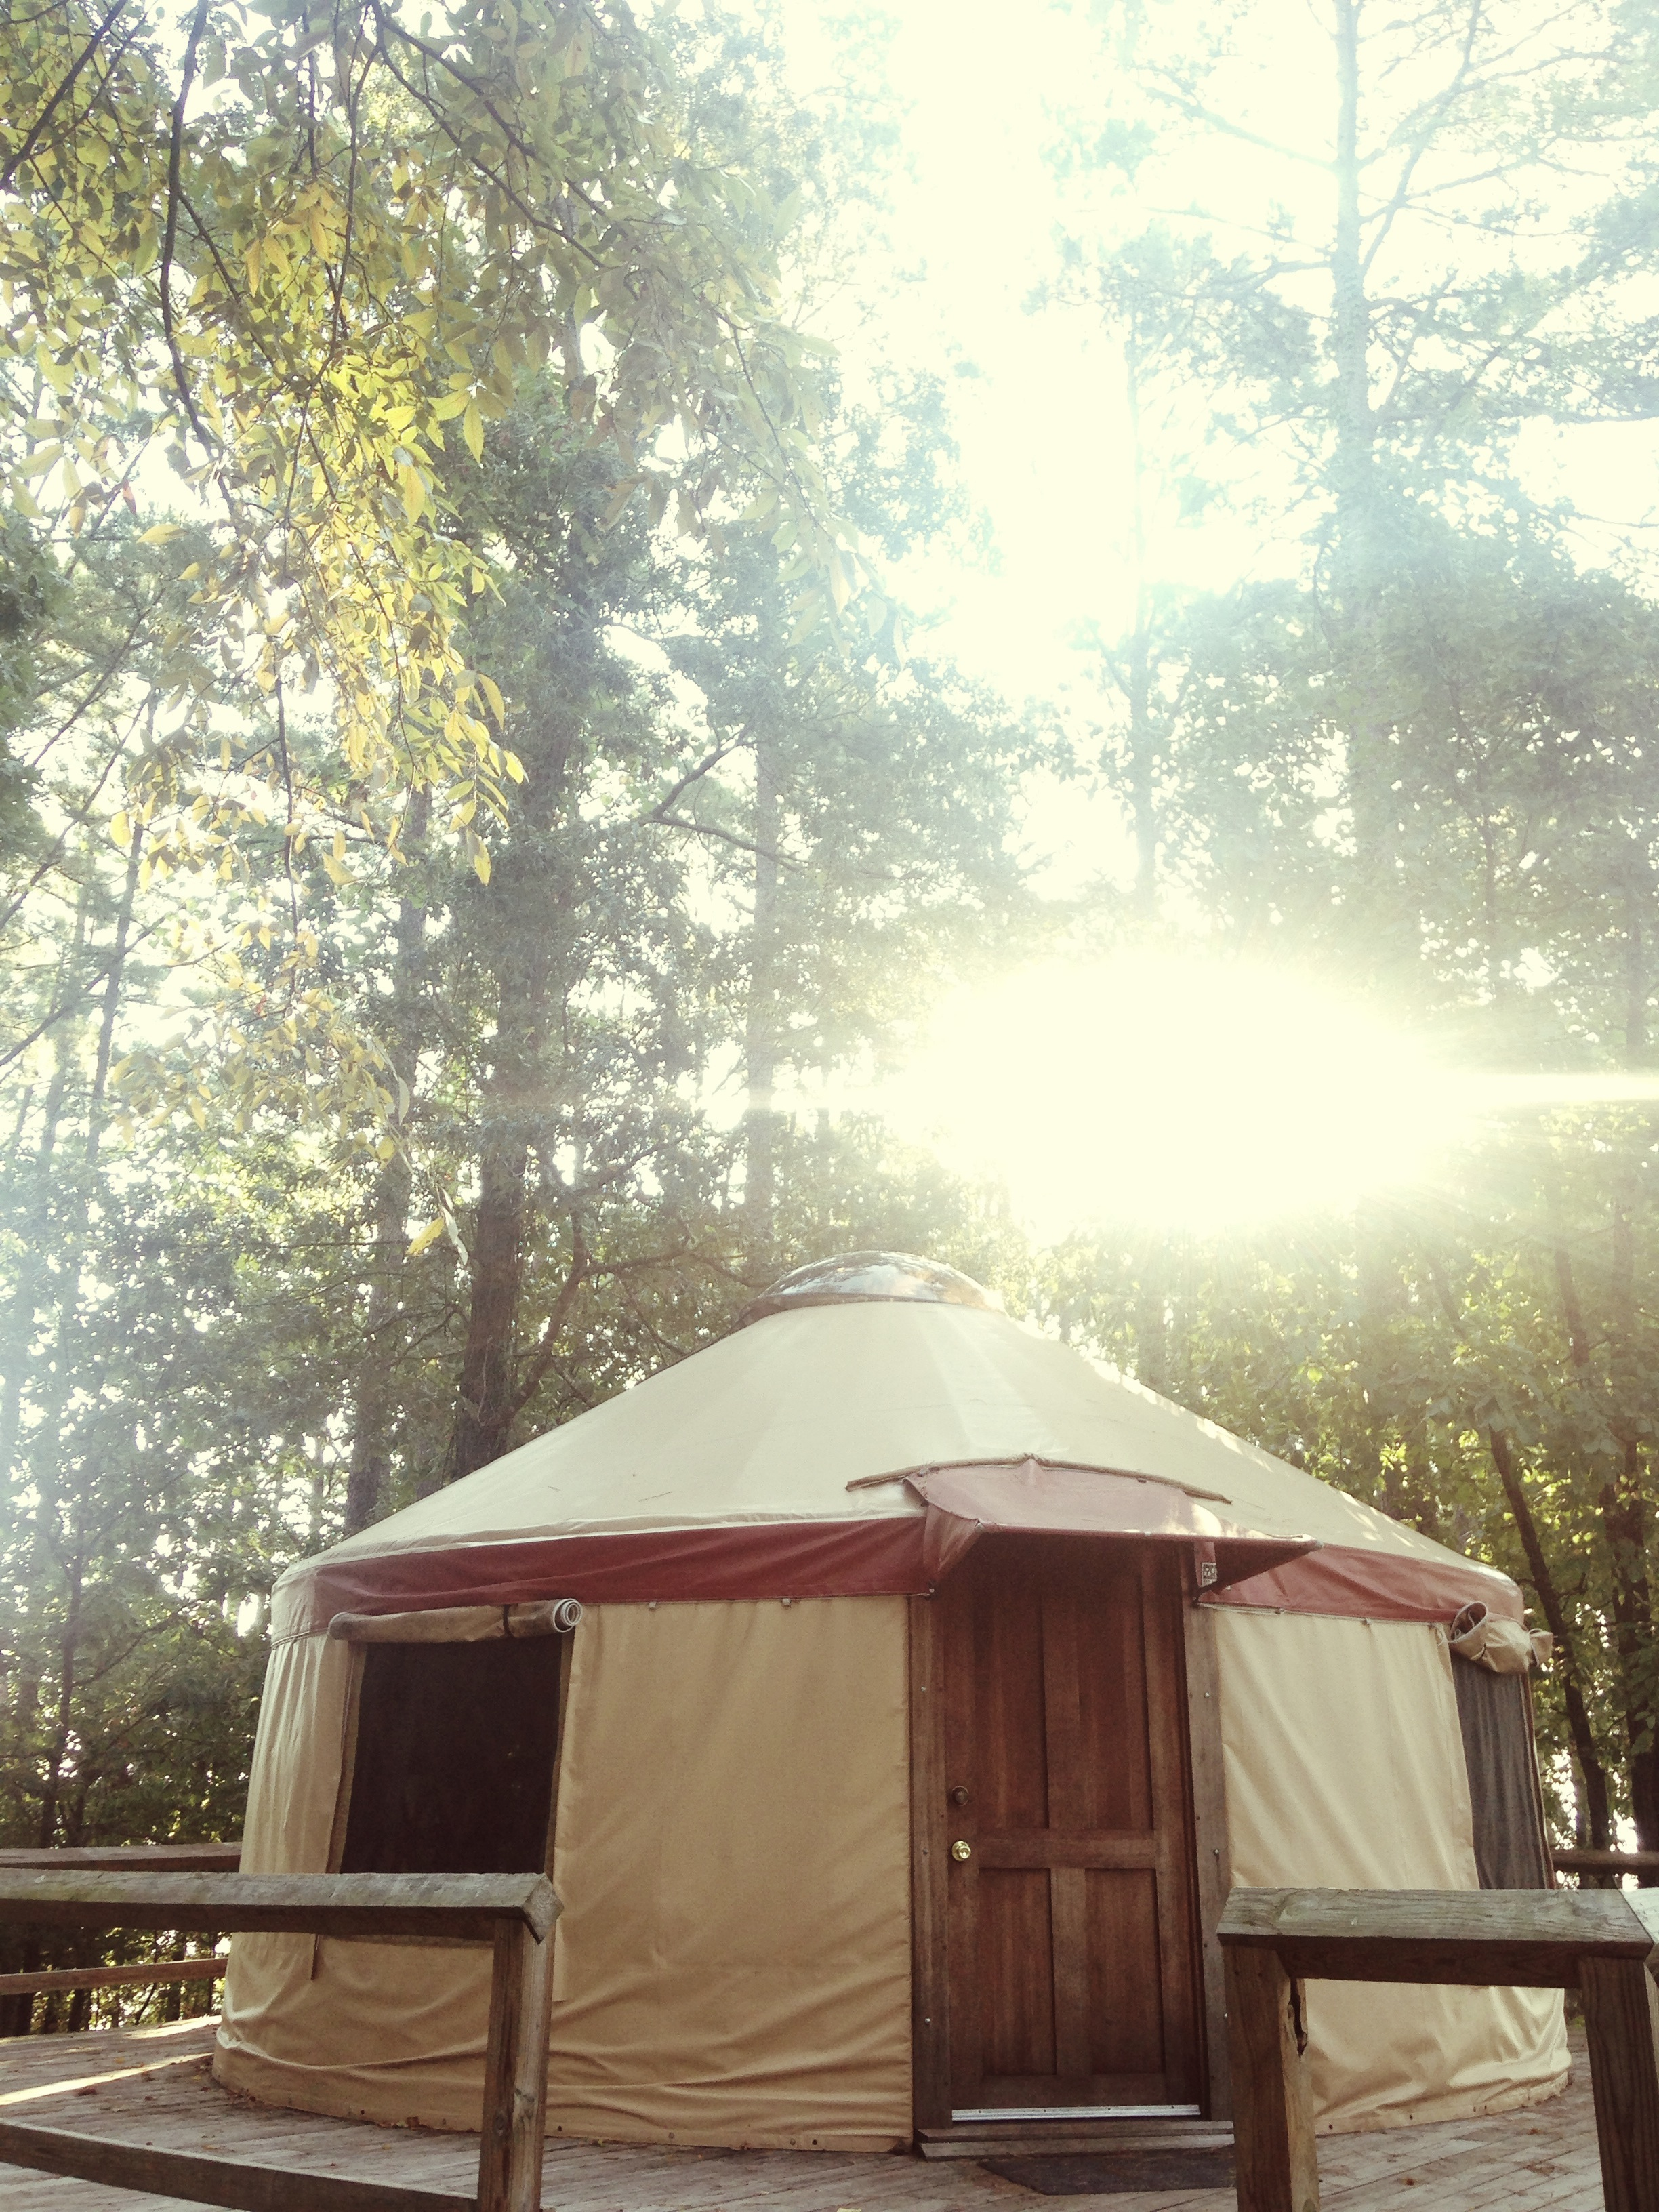 We stayed the night in one of these cool yurts. Arkansas' state parks are da bomb.